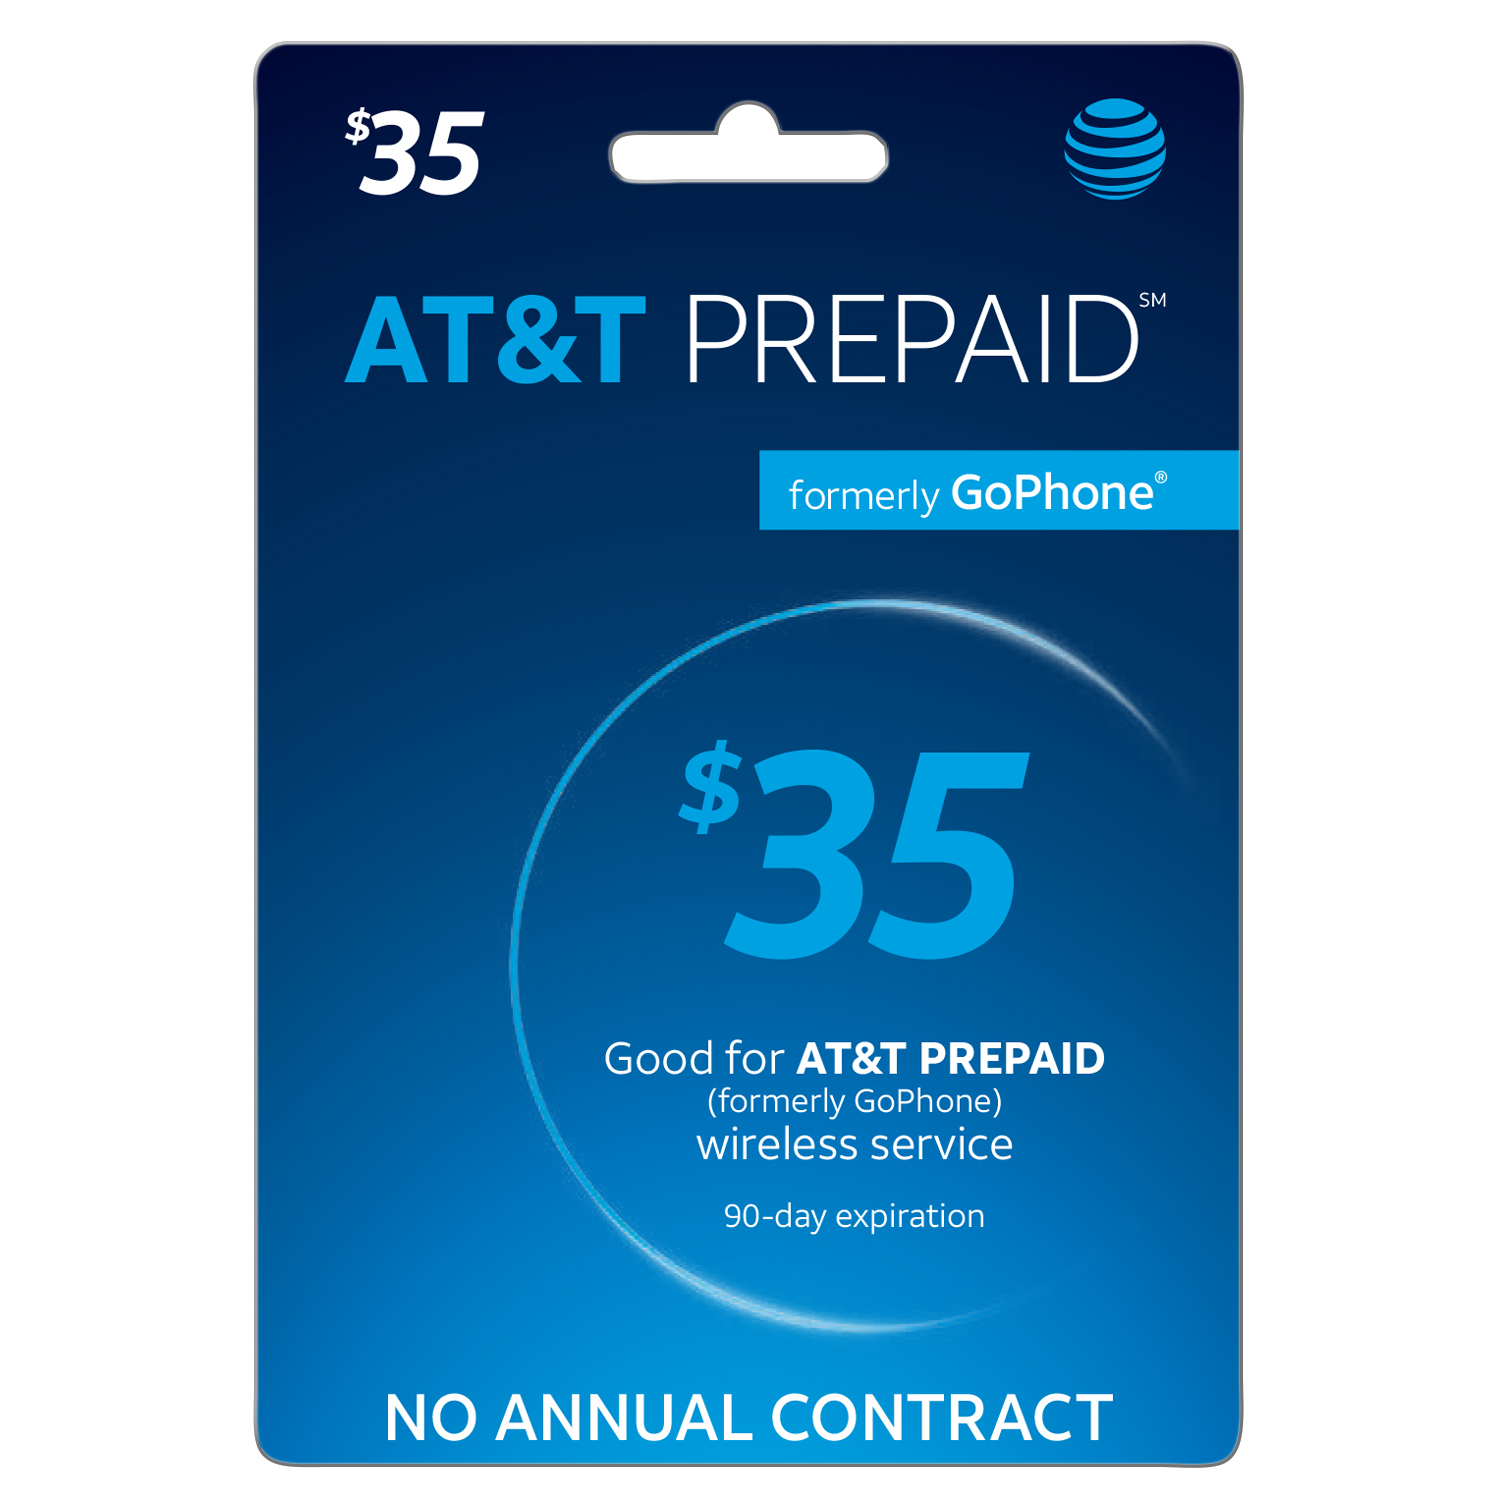 AT&T Prepaid Plans What am I buying? These AT&T Refills allow you to recharge/refill the amount of credits on your AT&T Mobile account. What do I do here? On this page, you can choose the amount you want to refill your mobile device with, to call/text or use data.